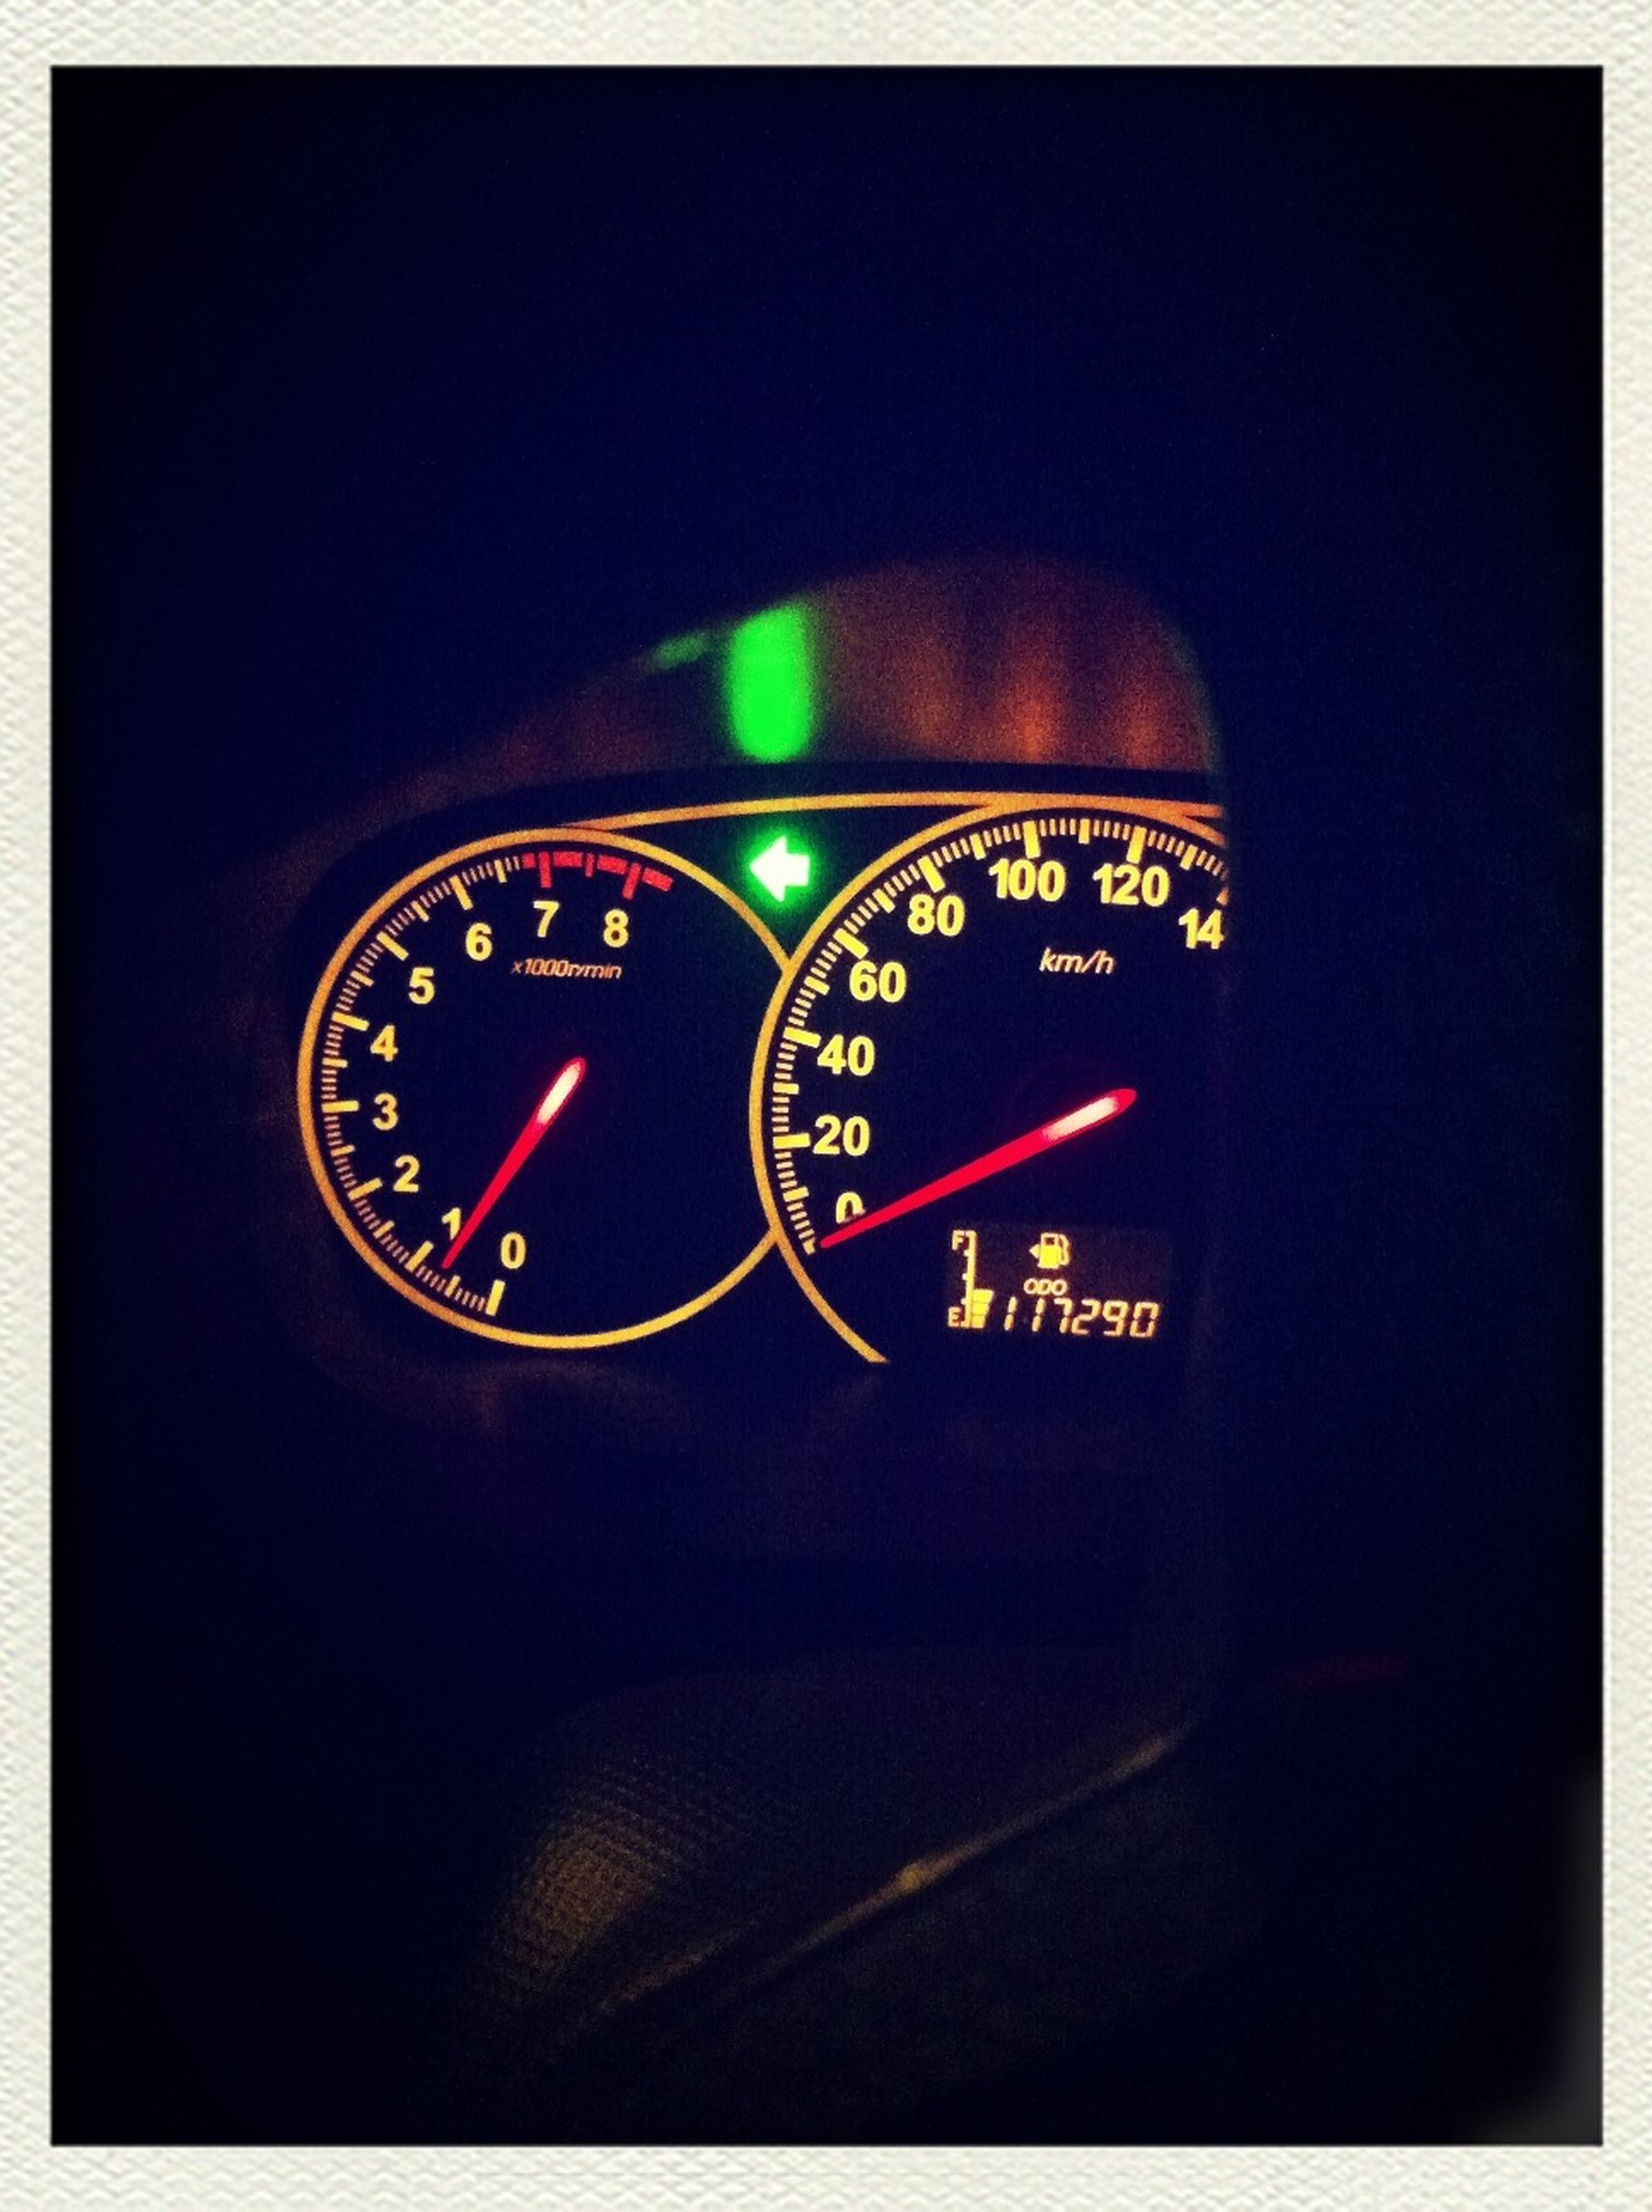 communication, transportation, text, number, western script, car, transfer print, clock, time, mode of transport, land vehicle, speedometer, auto post production filter, technology, close-up, illuminated, guidance, night, no people, indoors